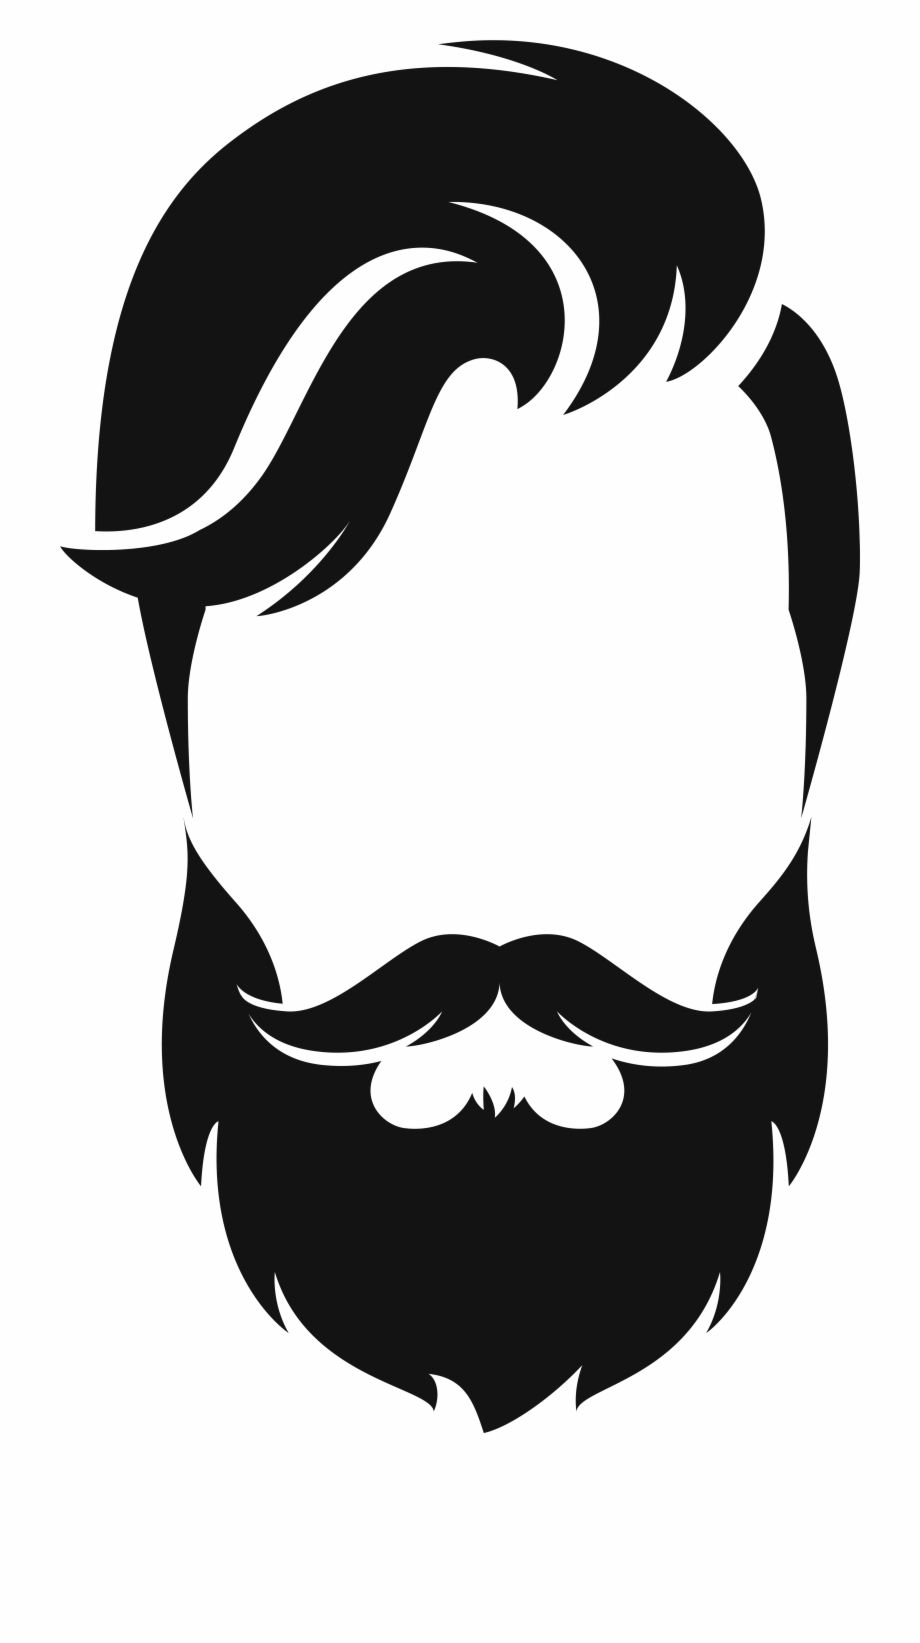 Real beard clipart picture freeuse Beard Silhouette Png - Beard Png Clipart, Transparent Png Download ... picture freeuse